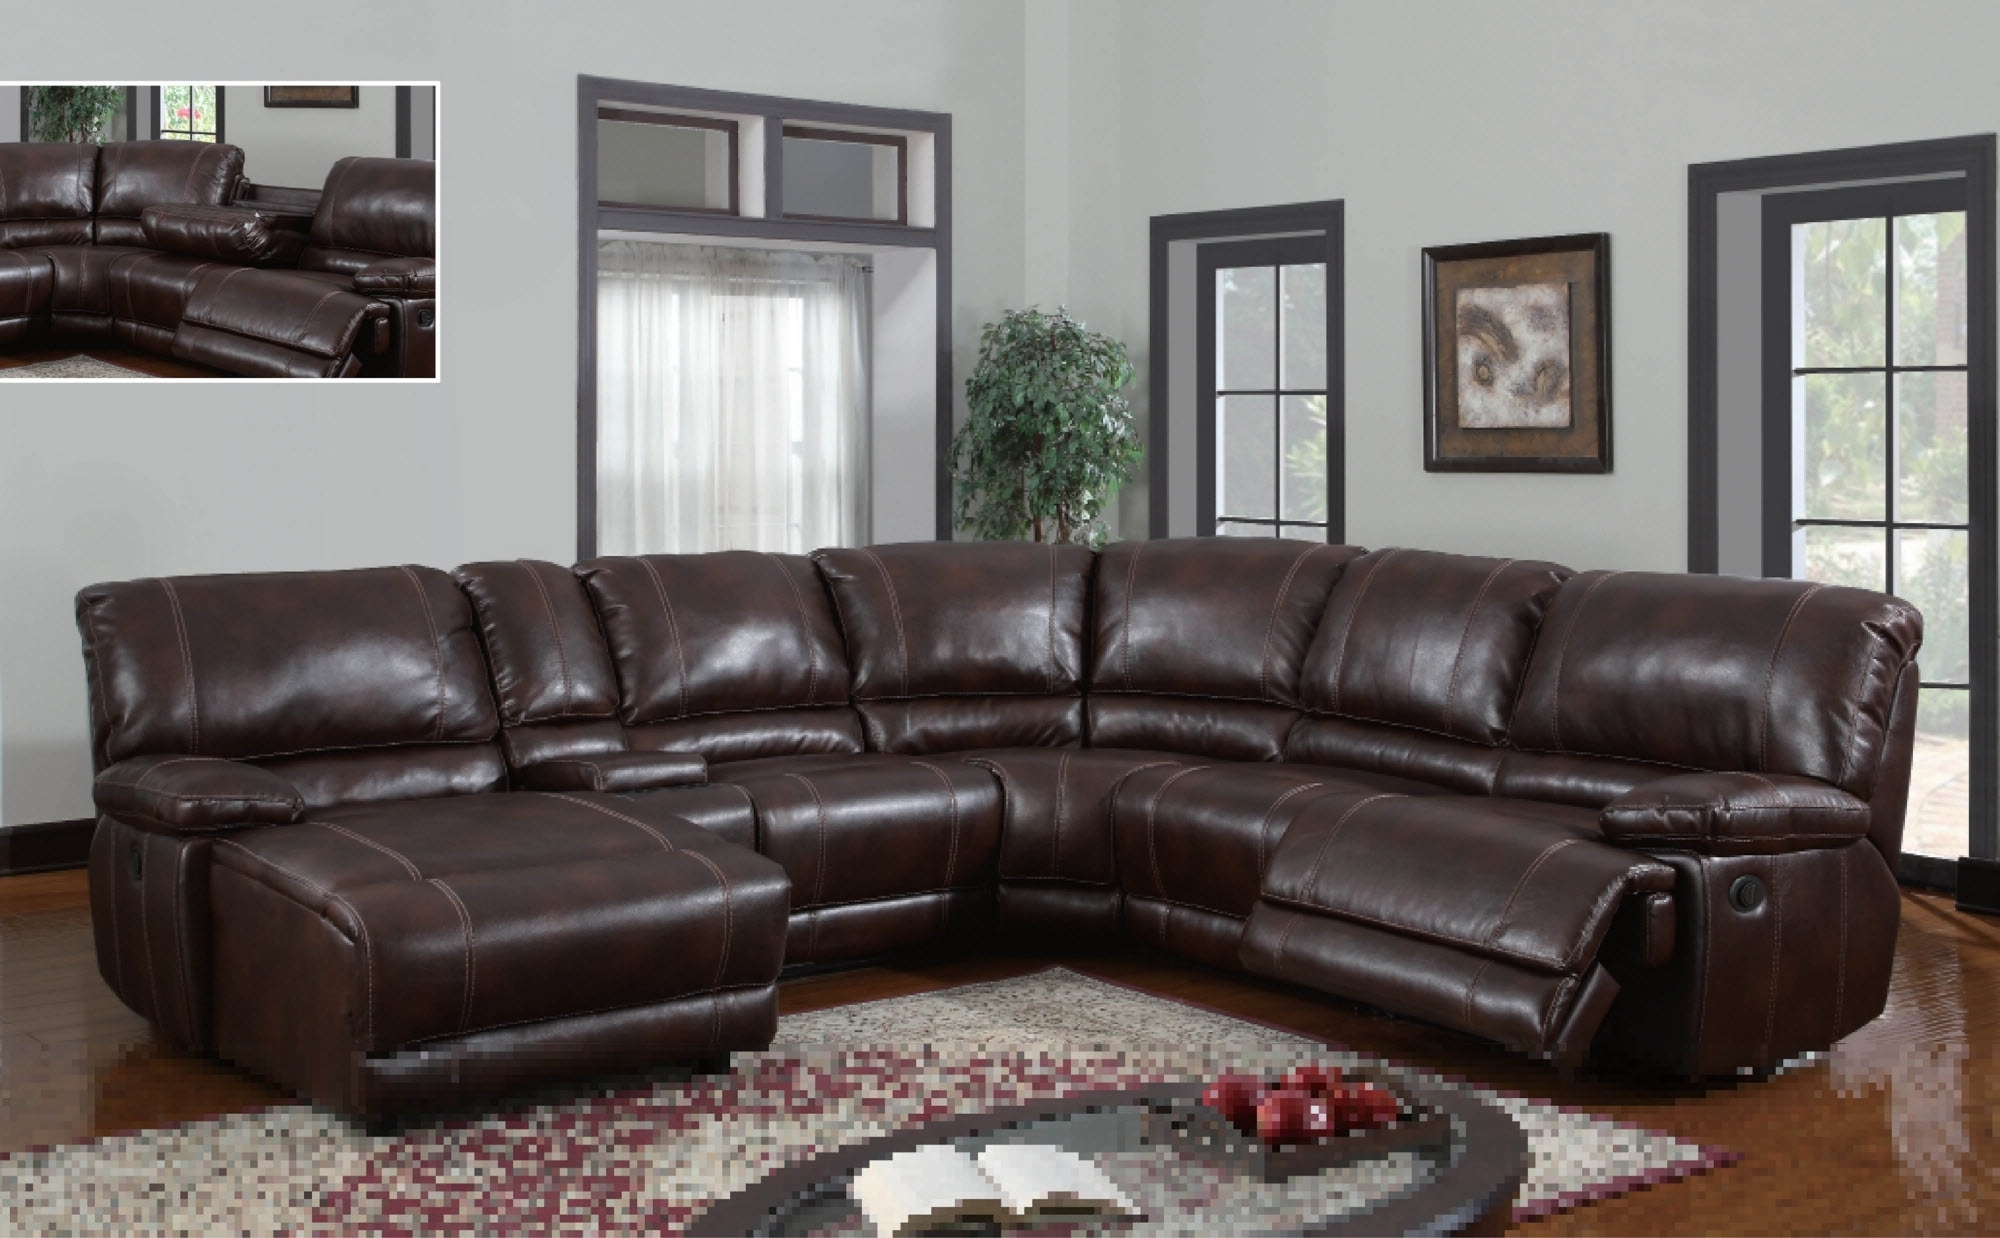 2019 Collection Sectional Sofas Rochester Ny – Mediasupload With Regard To Rochester Ny Sectional Sofas (View 10 of 20)